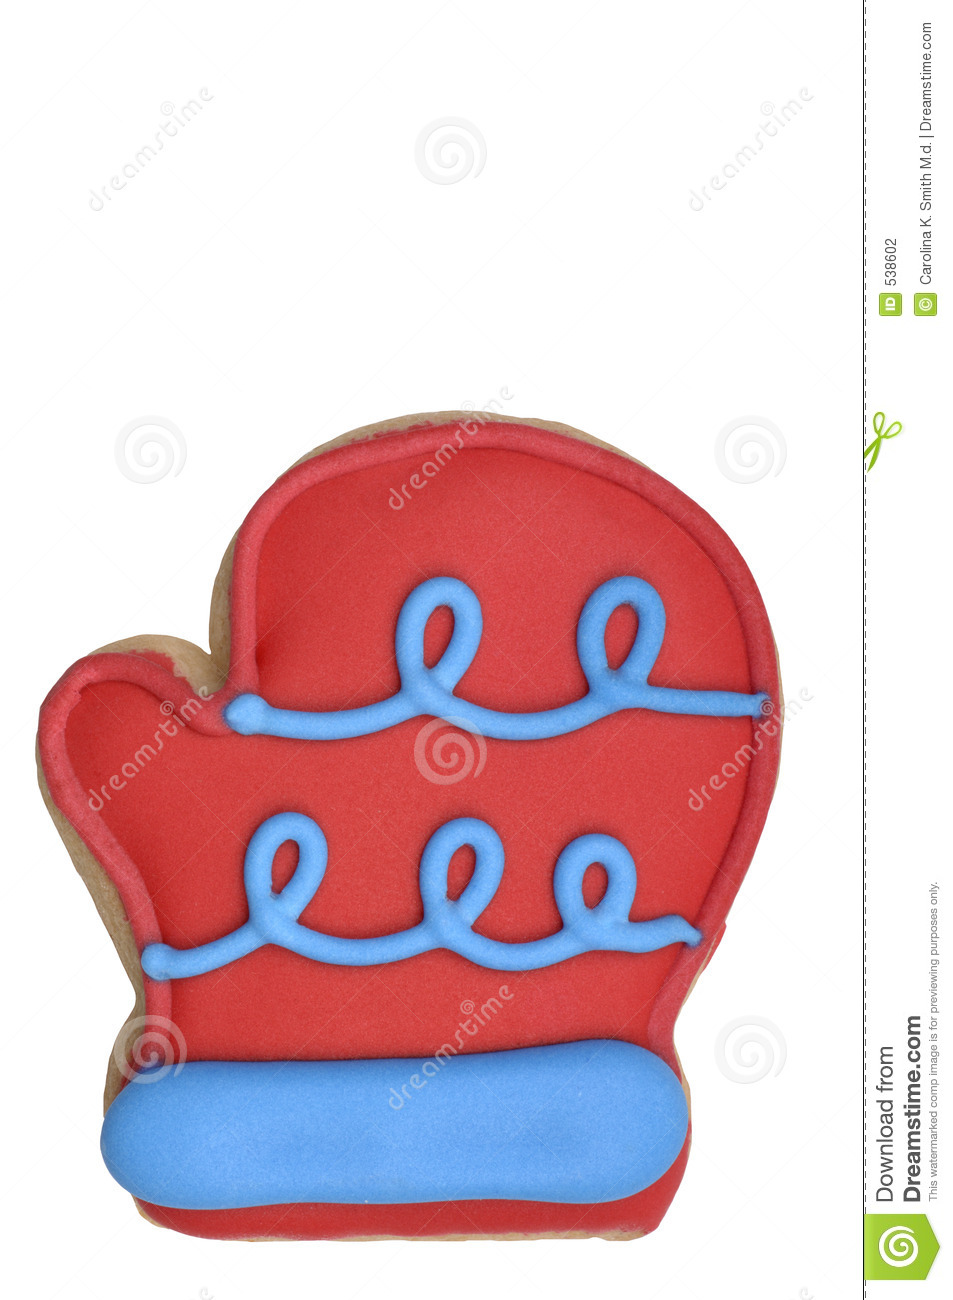 Cookie - Red Mitt